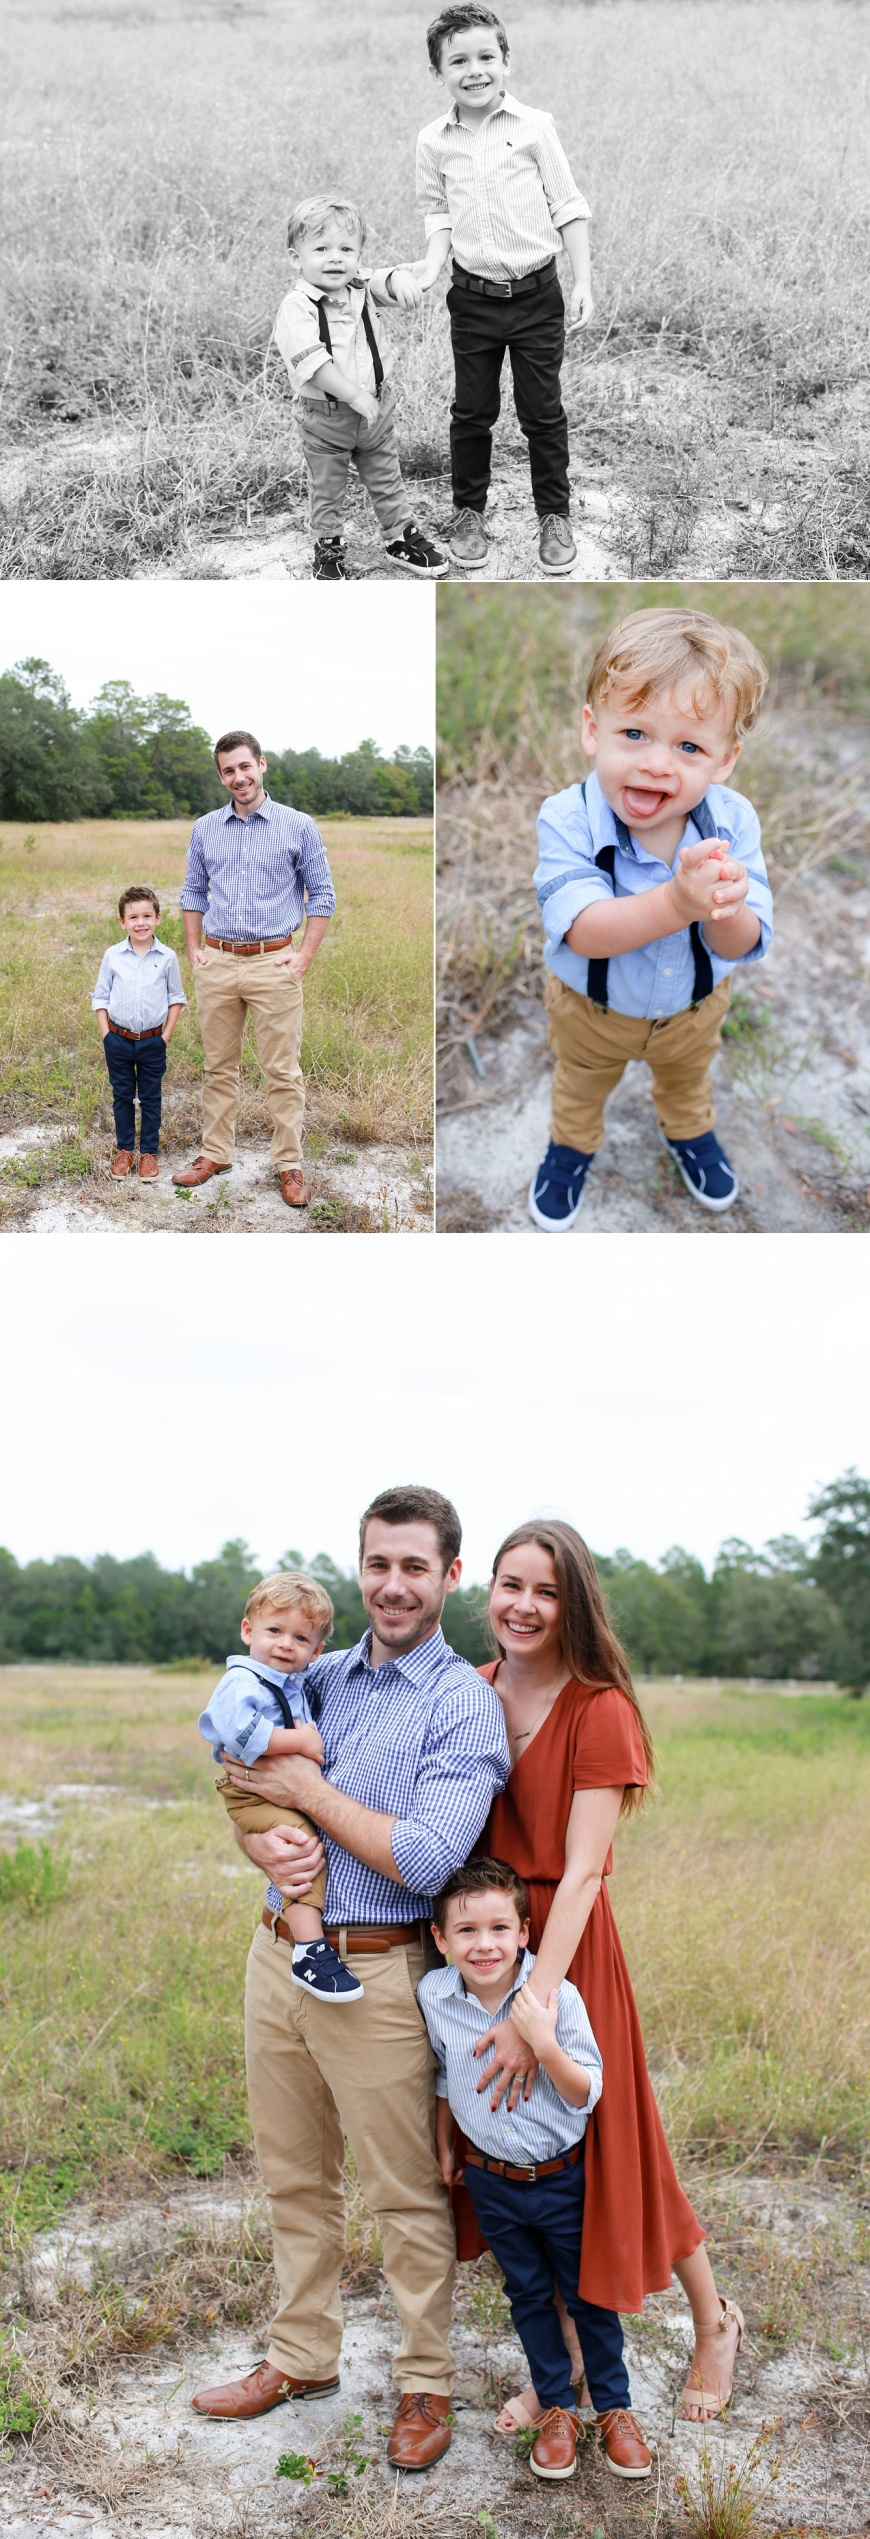 White-Point-Park-Niceville-Florida-Family-Photographer_1008.jpg